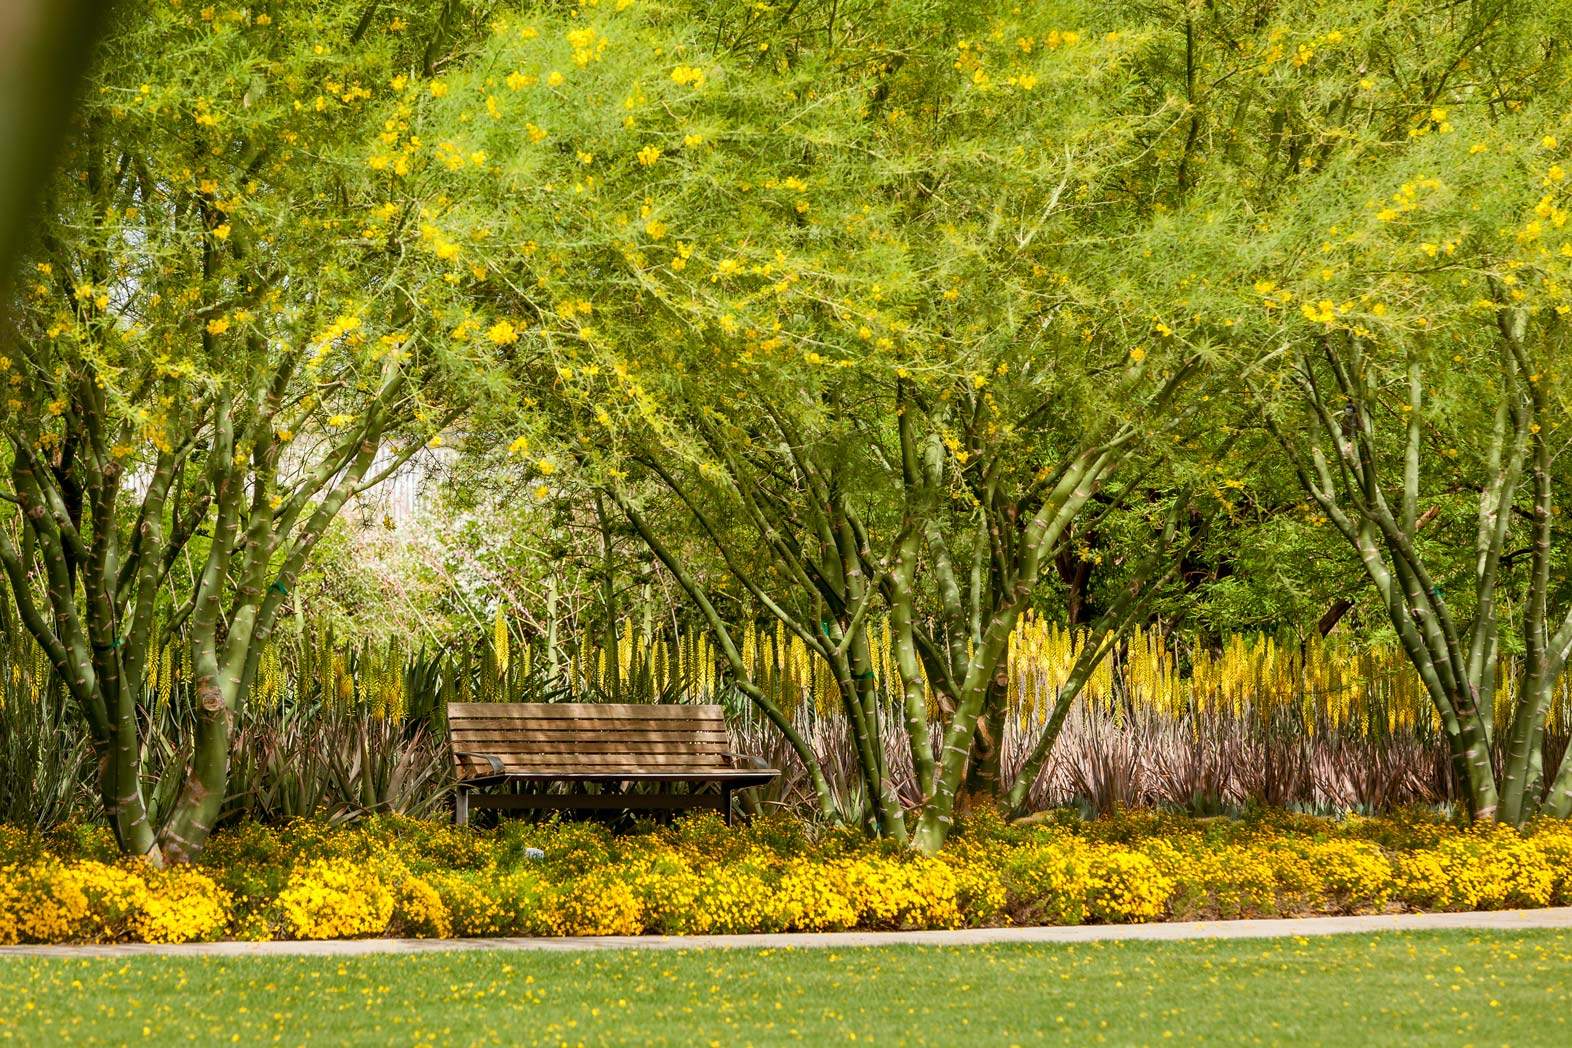 From afar, the Damianita blooms border the Great Lawn. A bench underneath the shade of a blooming Palo Verde tree overlooks the blooms.